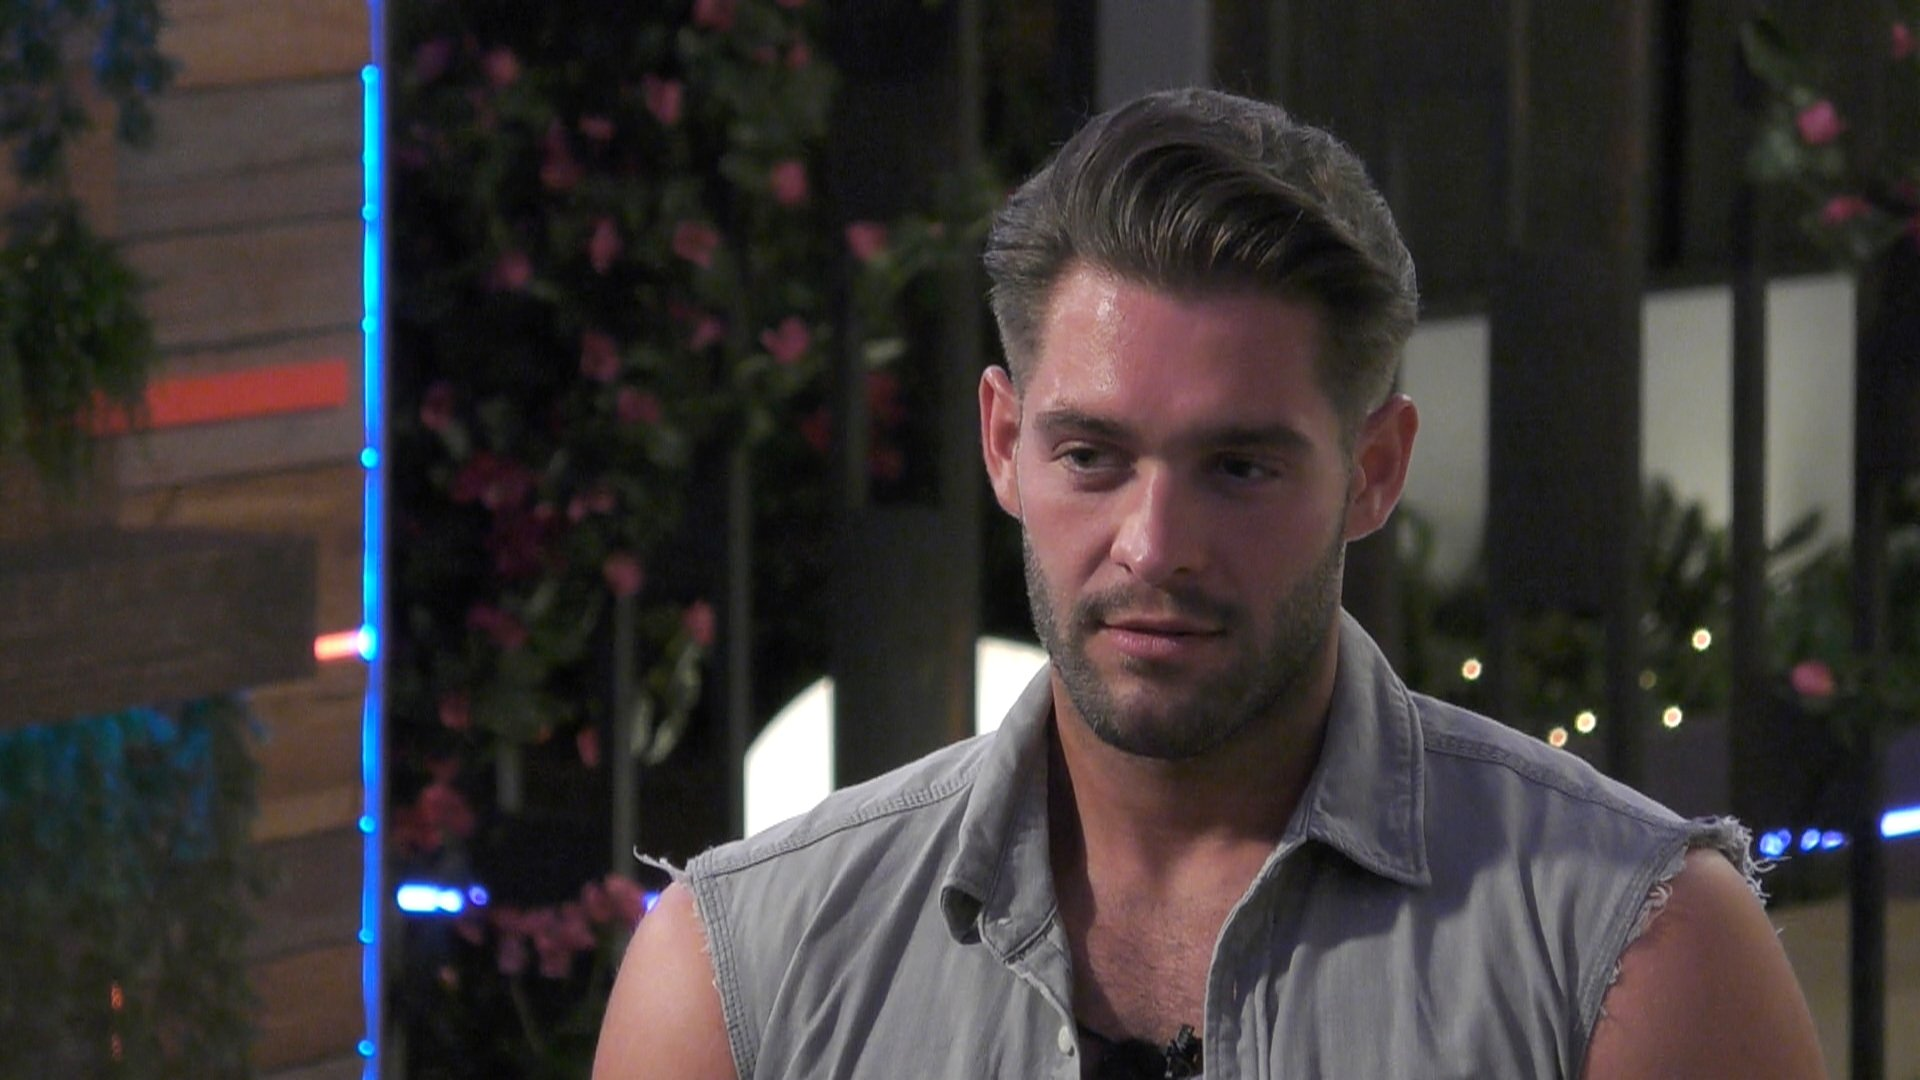 Love Island's Jonny responds to 'possessive and controlling' claims